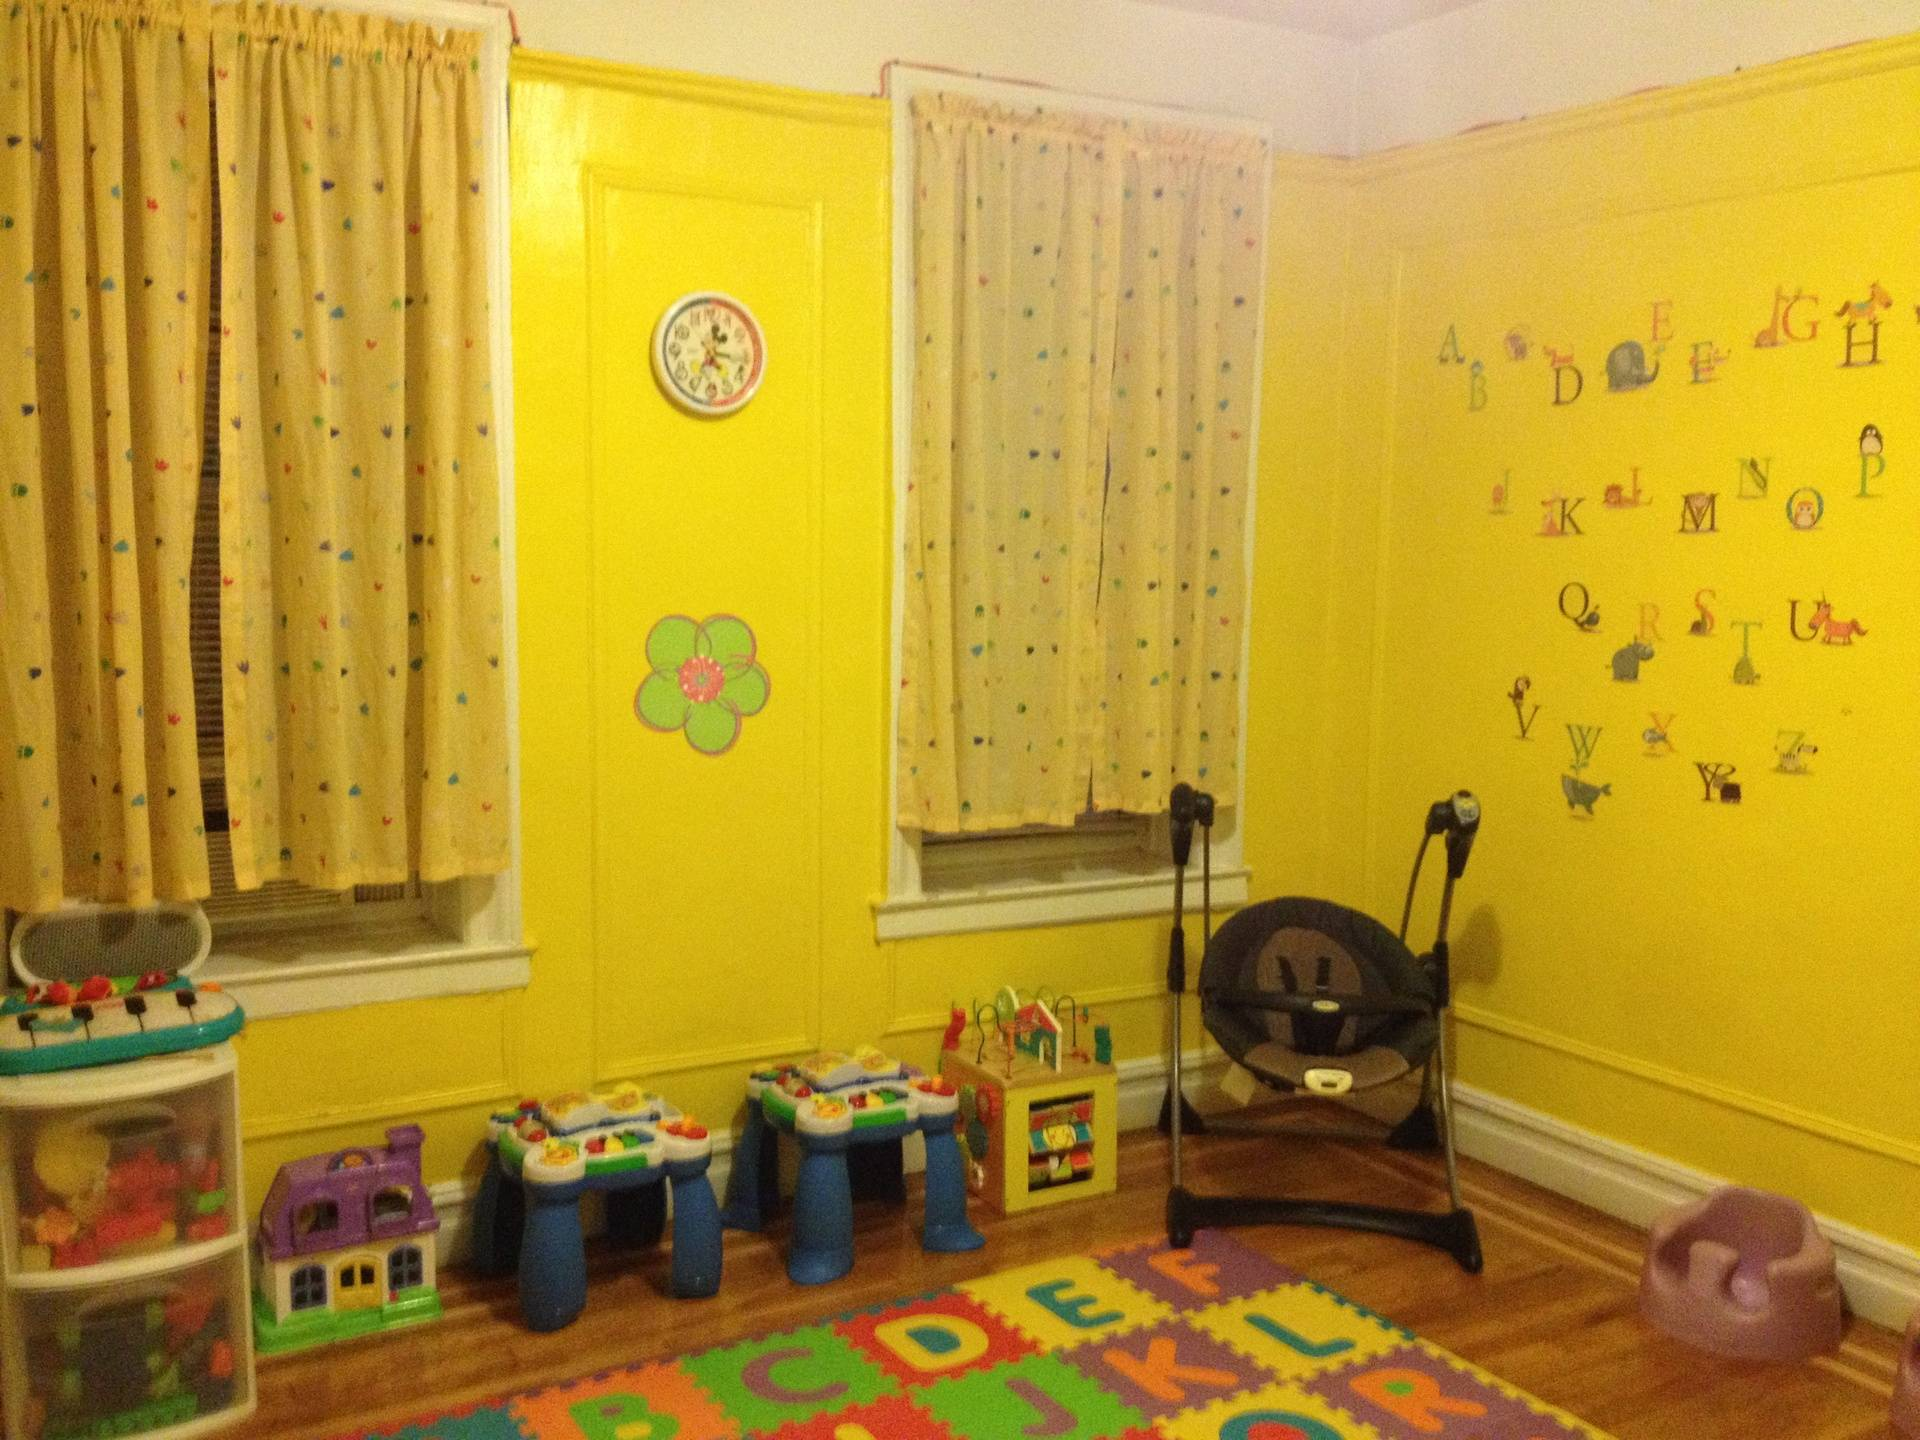 Welcome to Little Daydreamers 2 Day Care